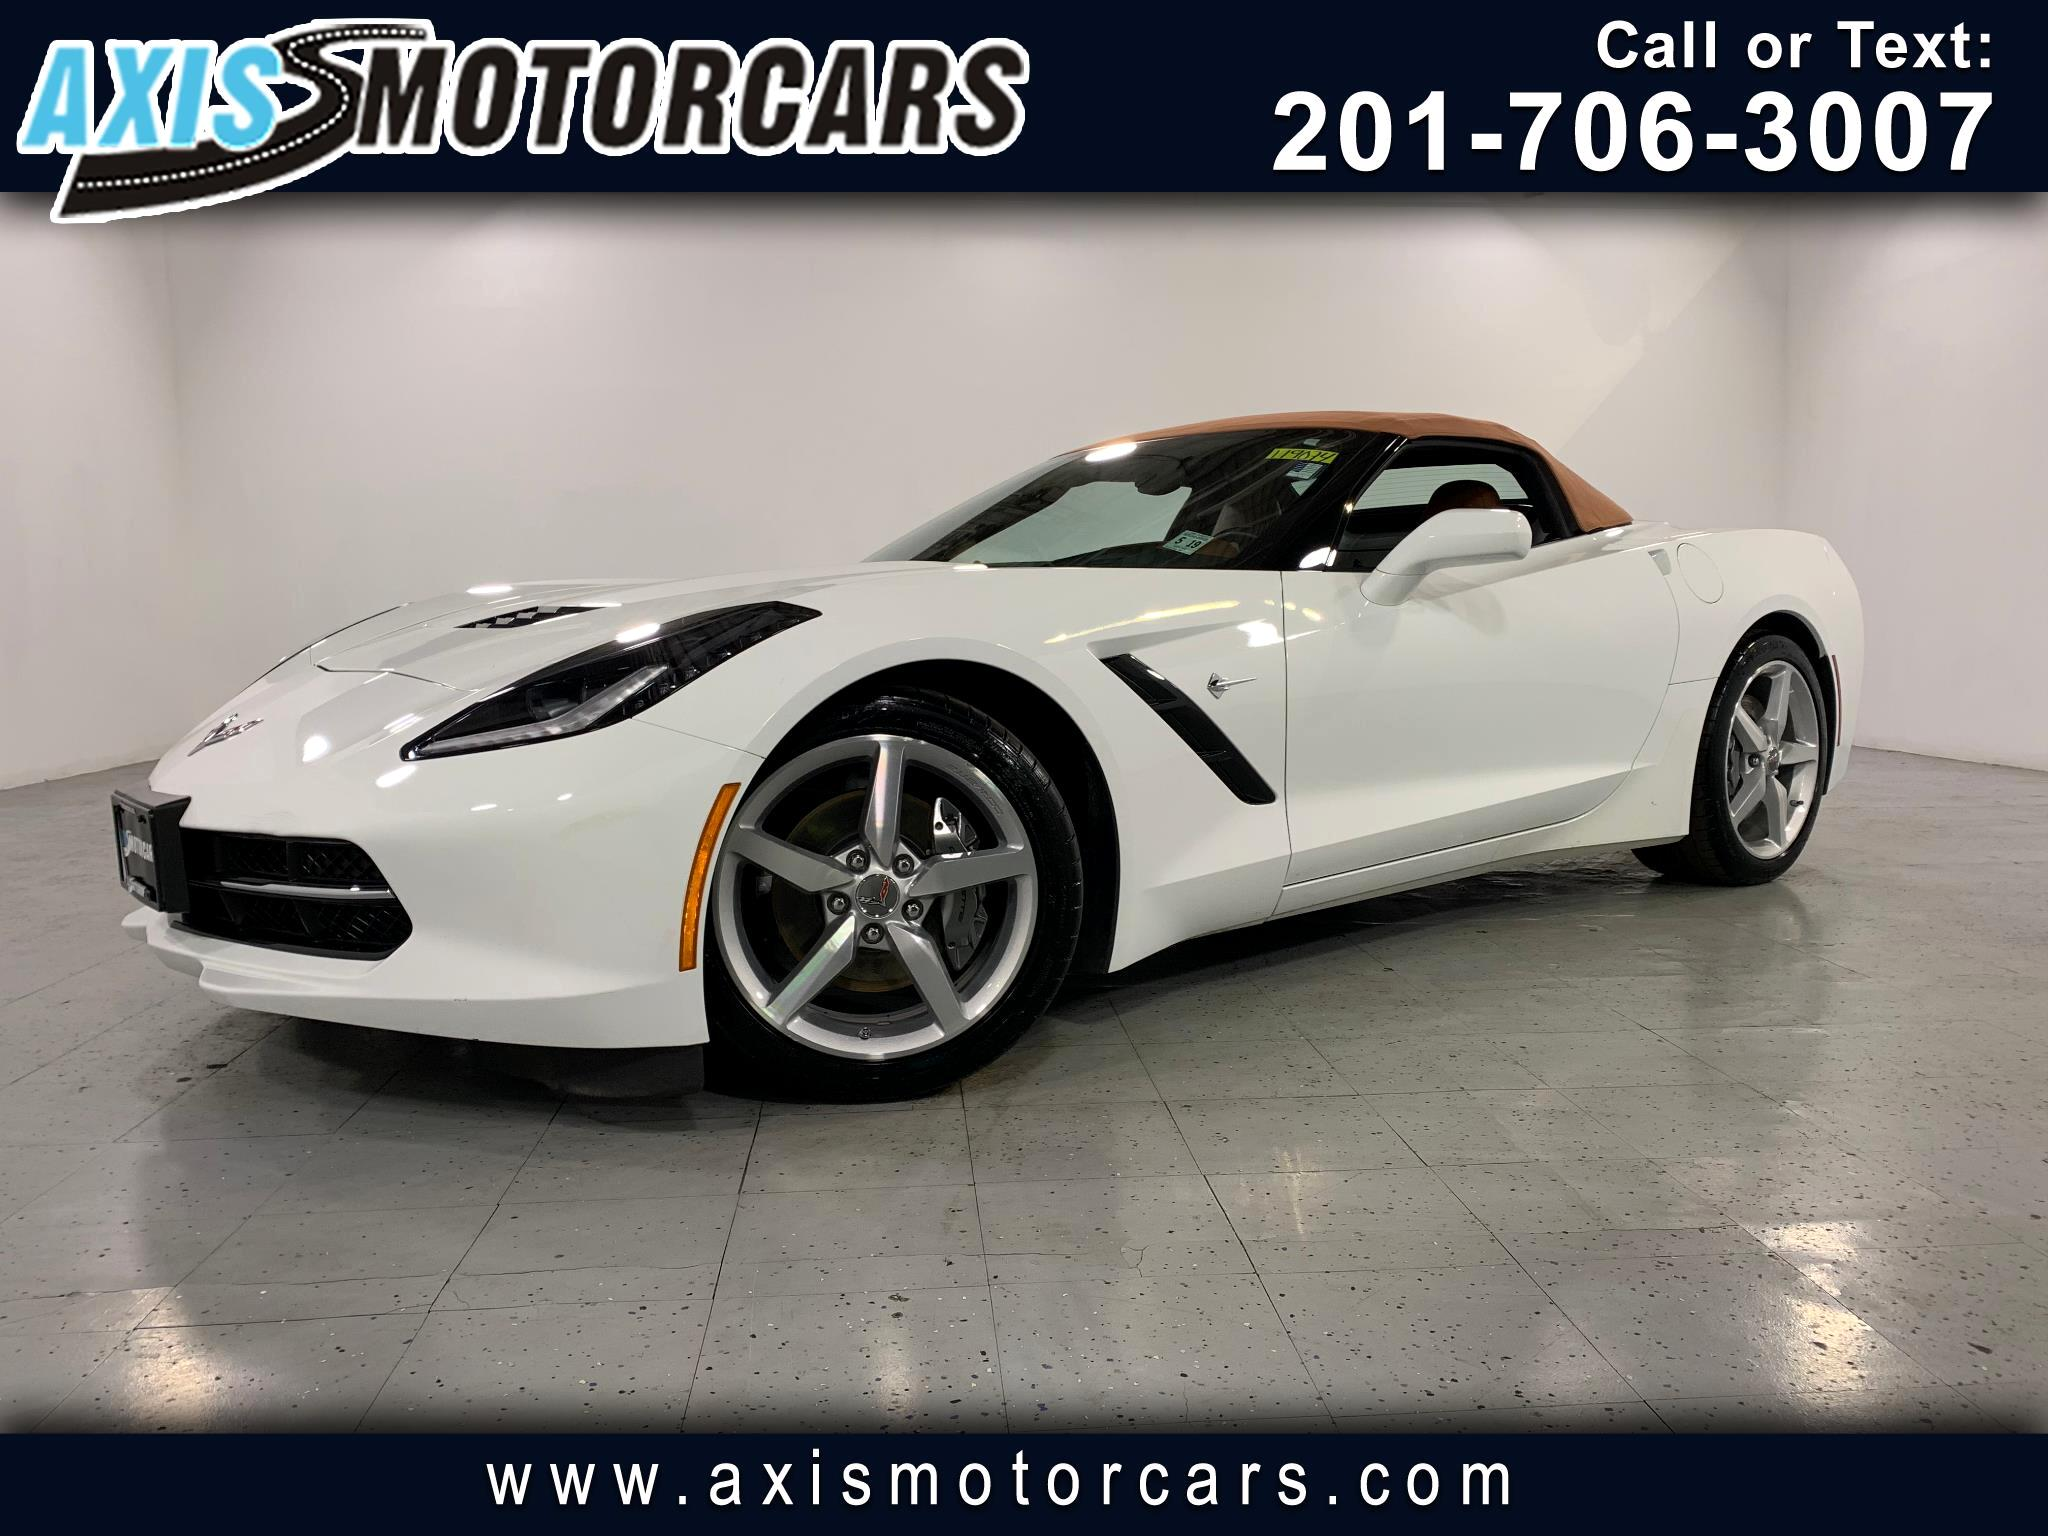 2014 Chevrolet Corvette Stingray 2dr Conv w/3LT